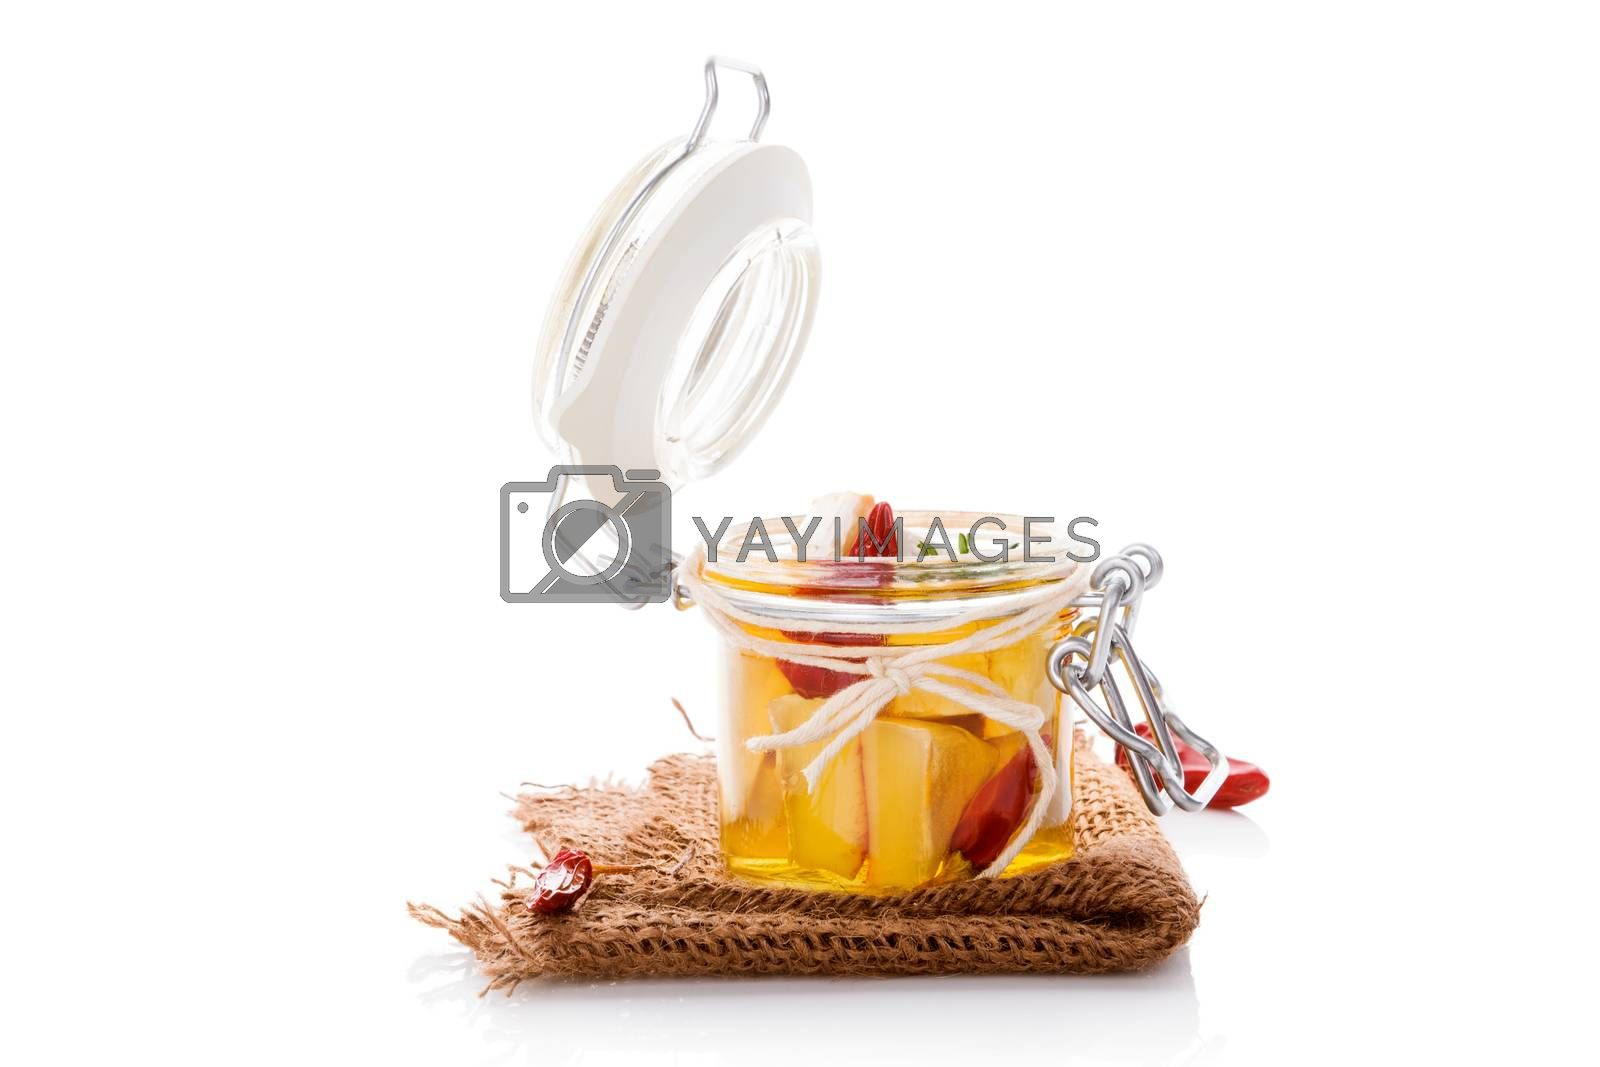 Marinated camembert cheese in glass jar isolated on white background. Culinary cheese eating.